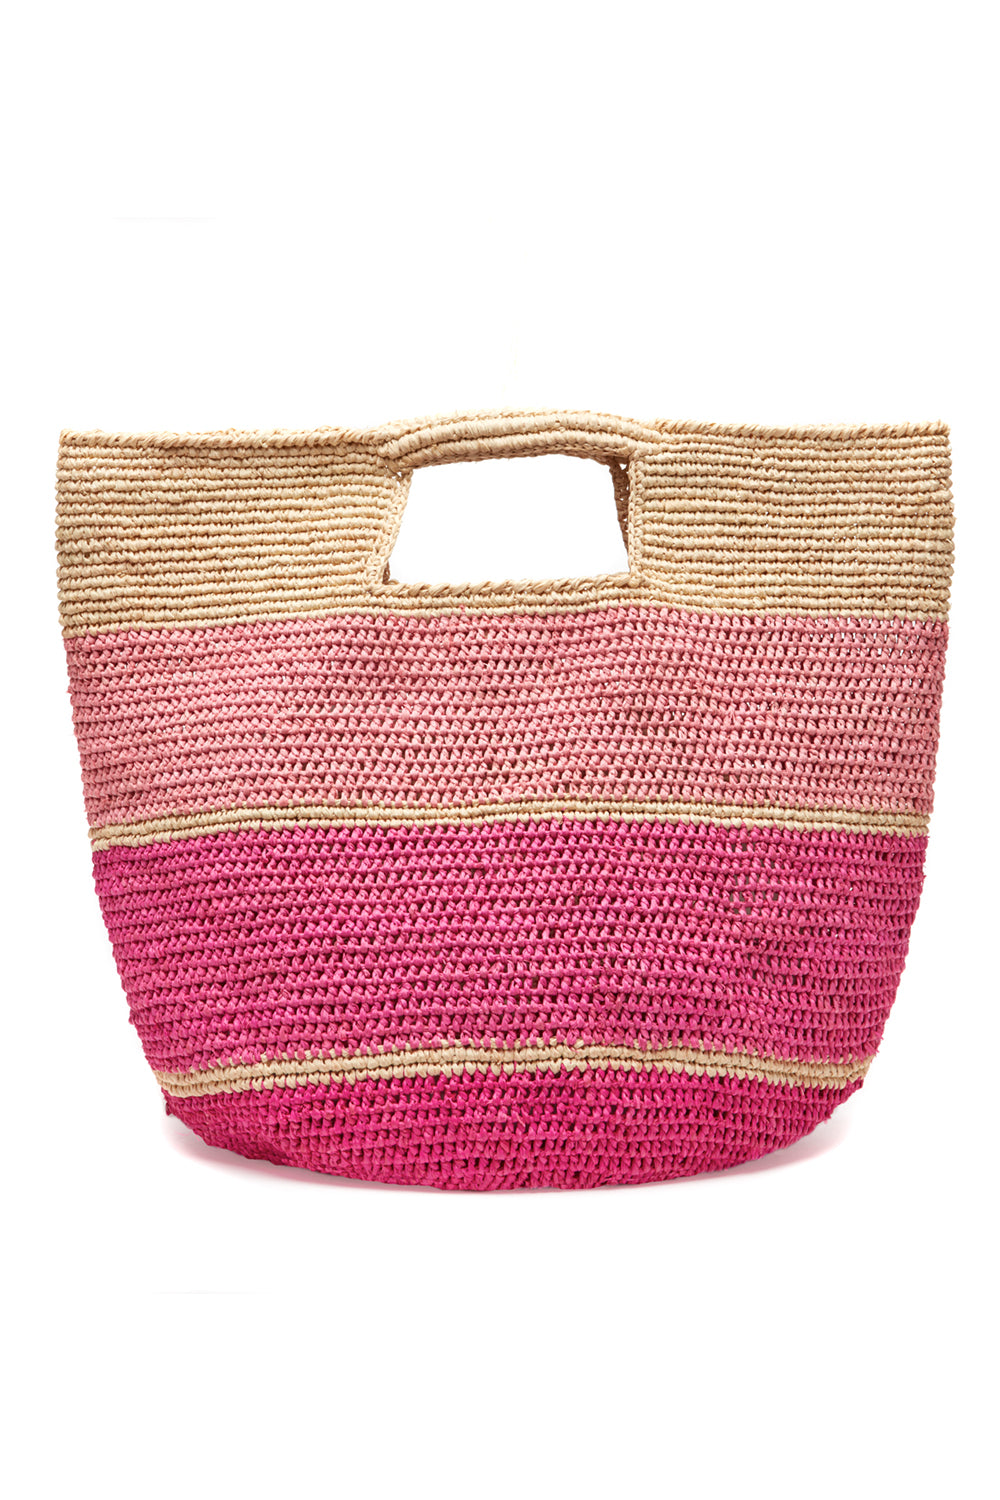 Camden Tote in Pink